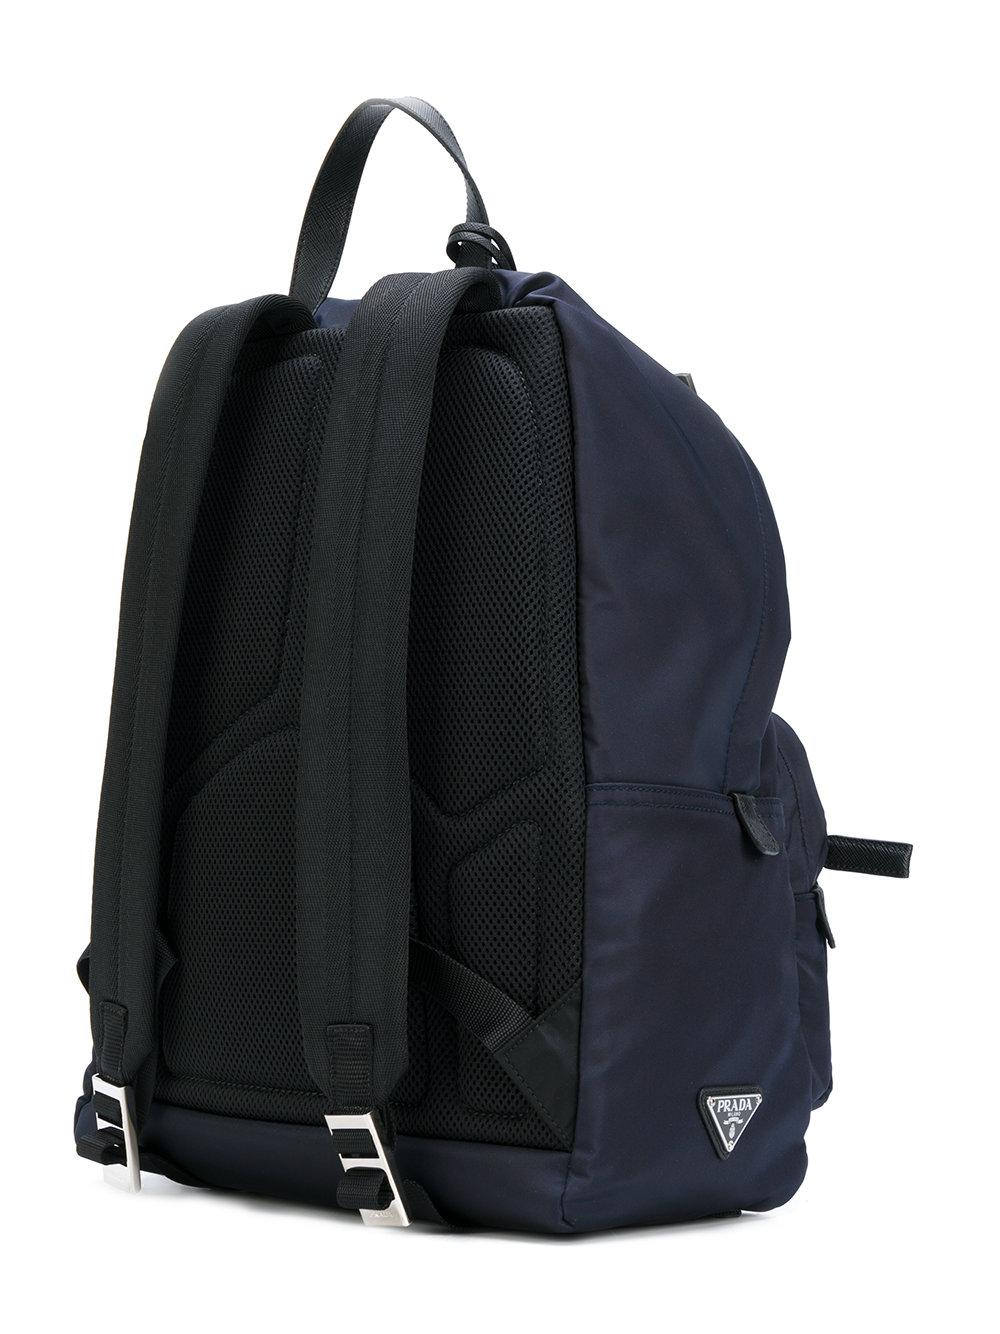 c5496fedad85 australia lyst prada zaino backpack in black for men 12ca9 cbfd3; czech lyst  prada large zip backpack in blue for men d2614 1ef01